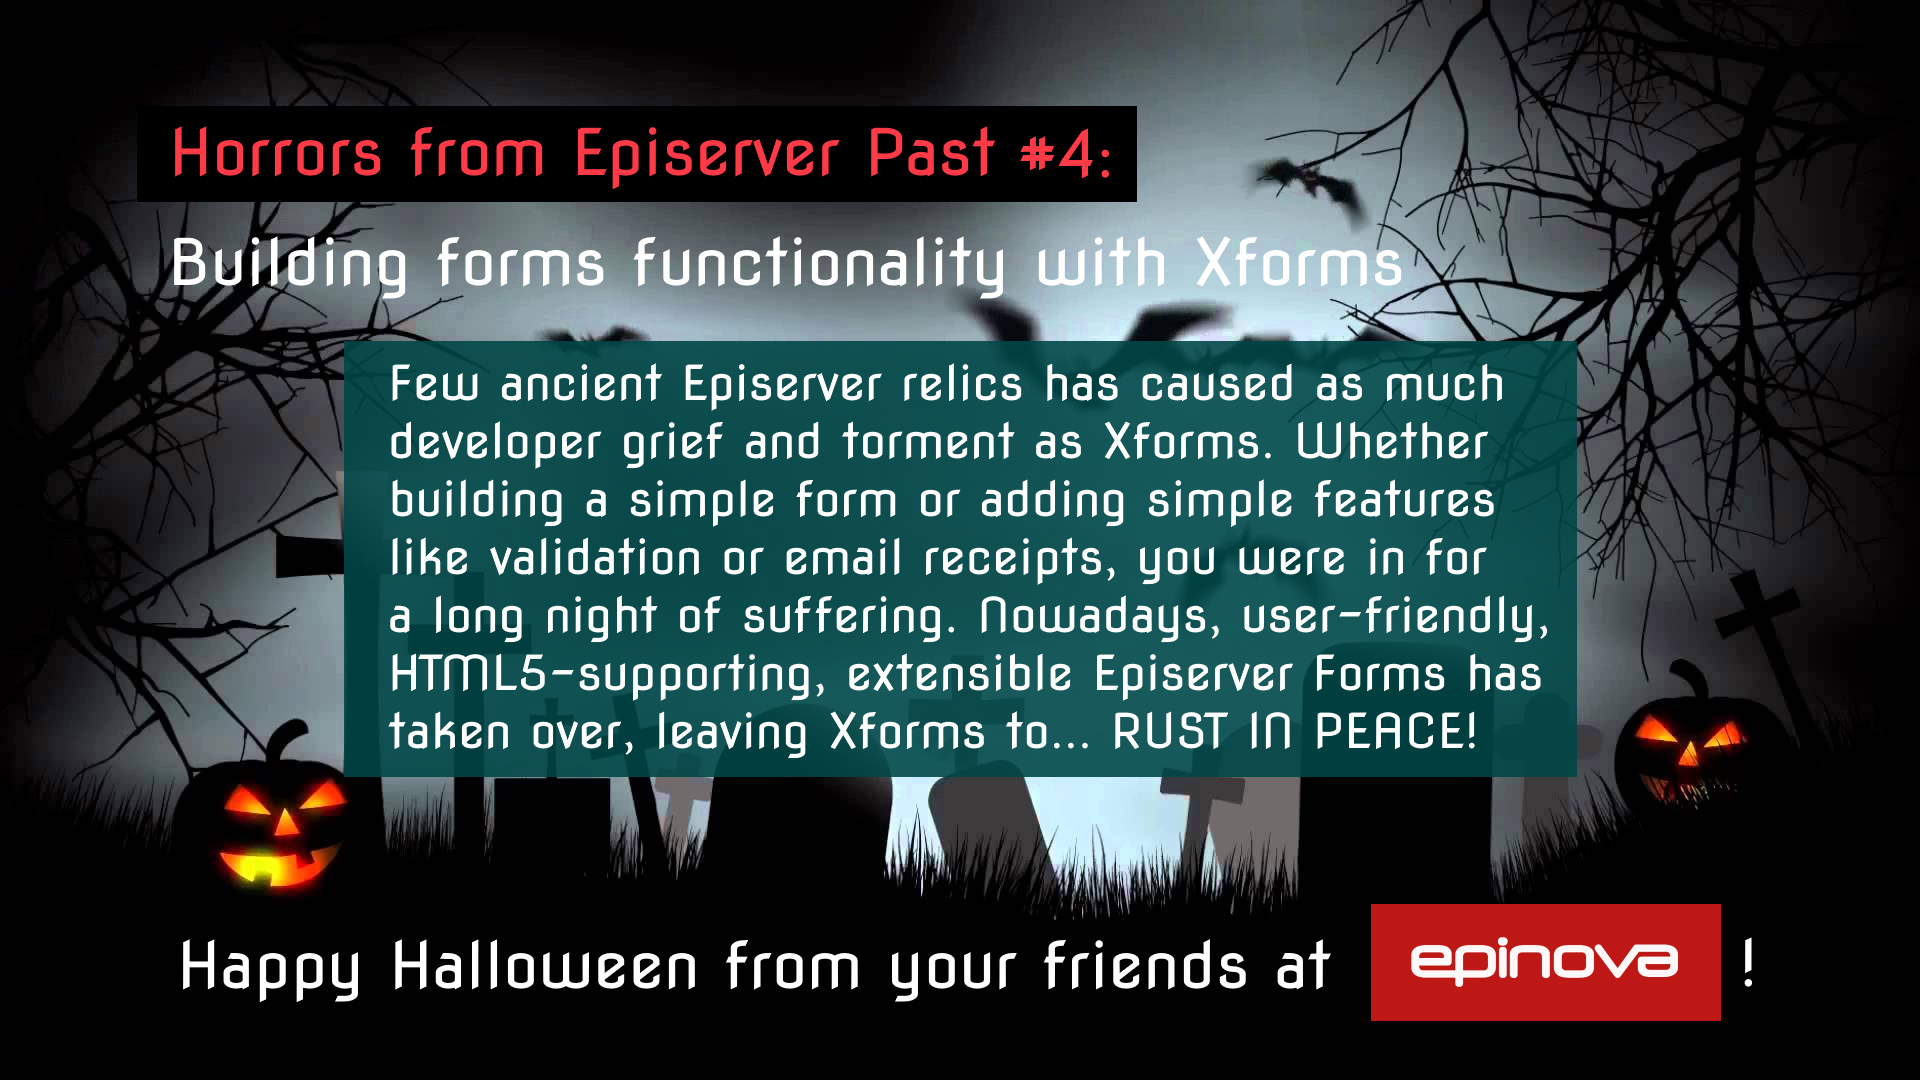 Humorous Halloween throwback to Episerver's XForms builder